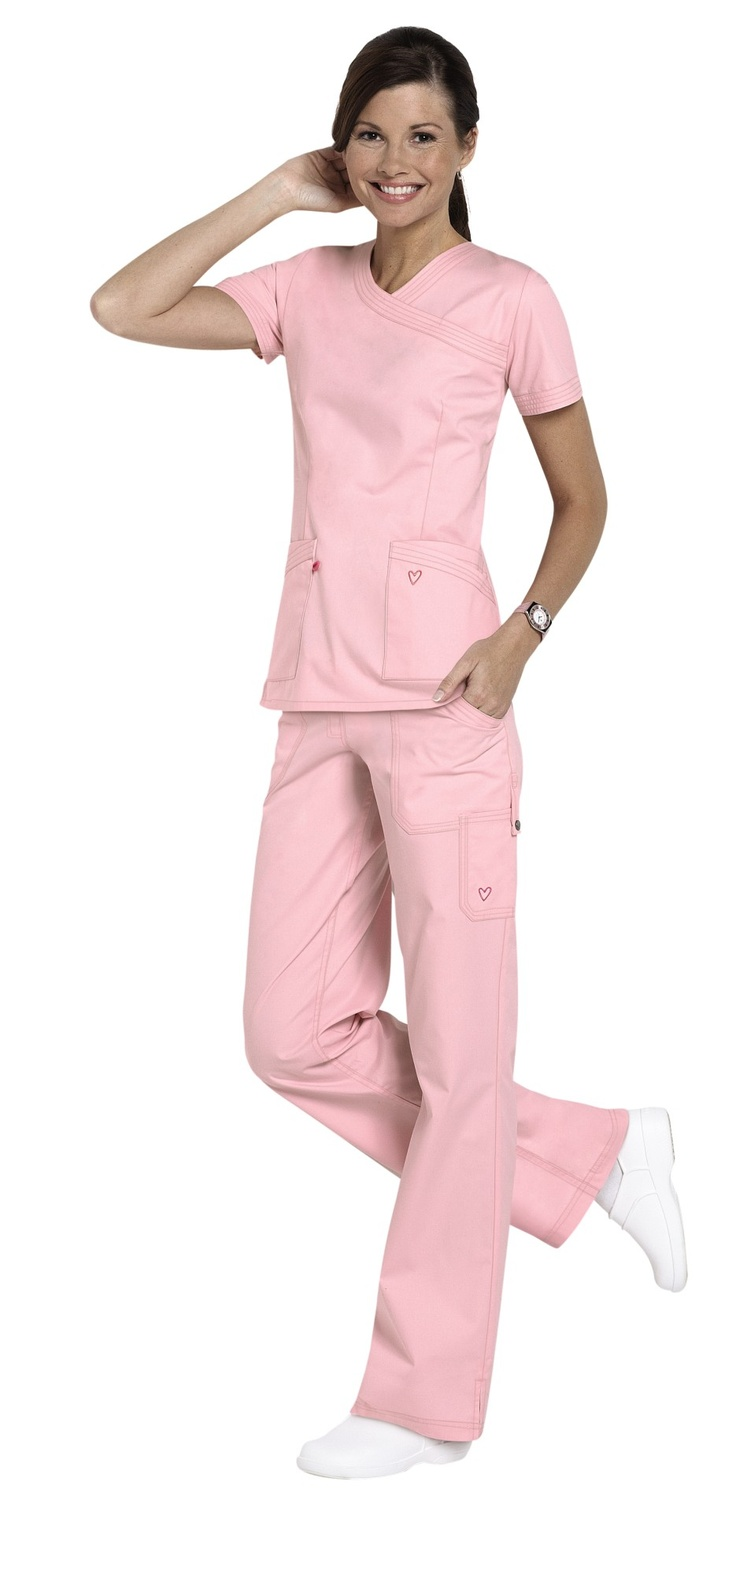 Landau Twill Collection mock-wrap scrub top and the paints are a great look